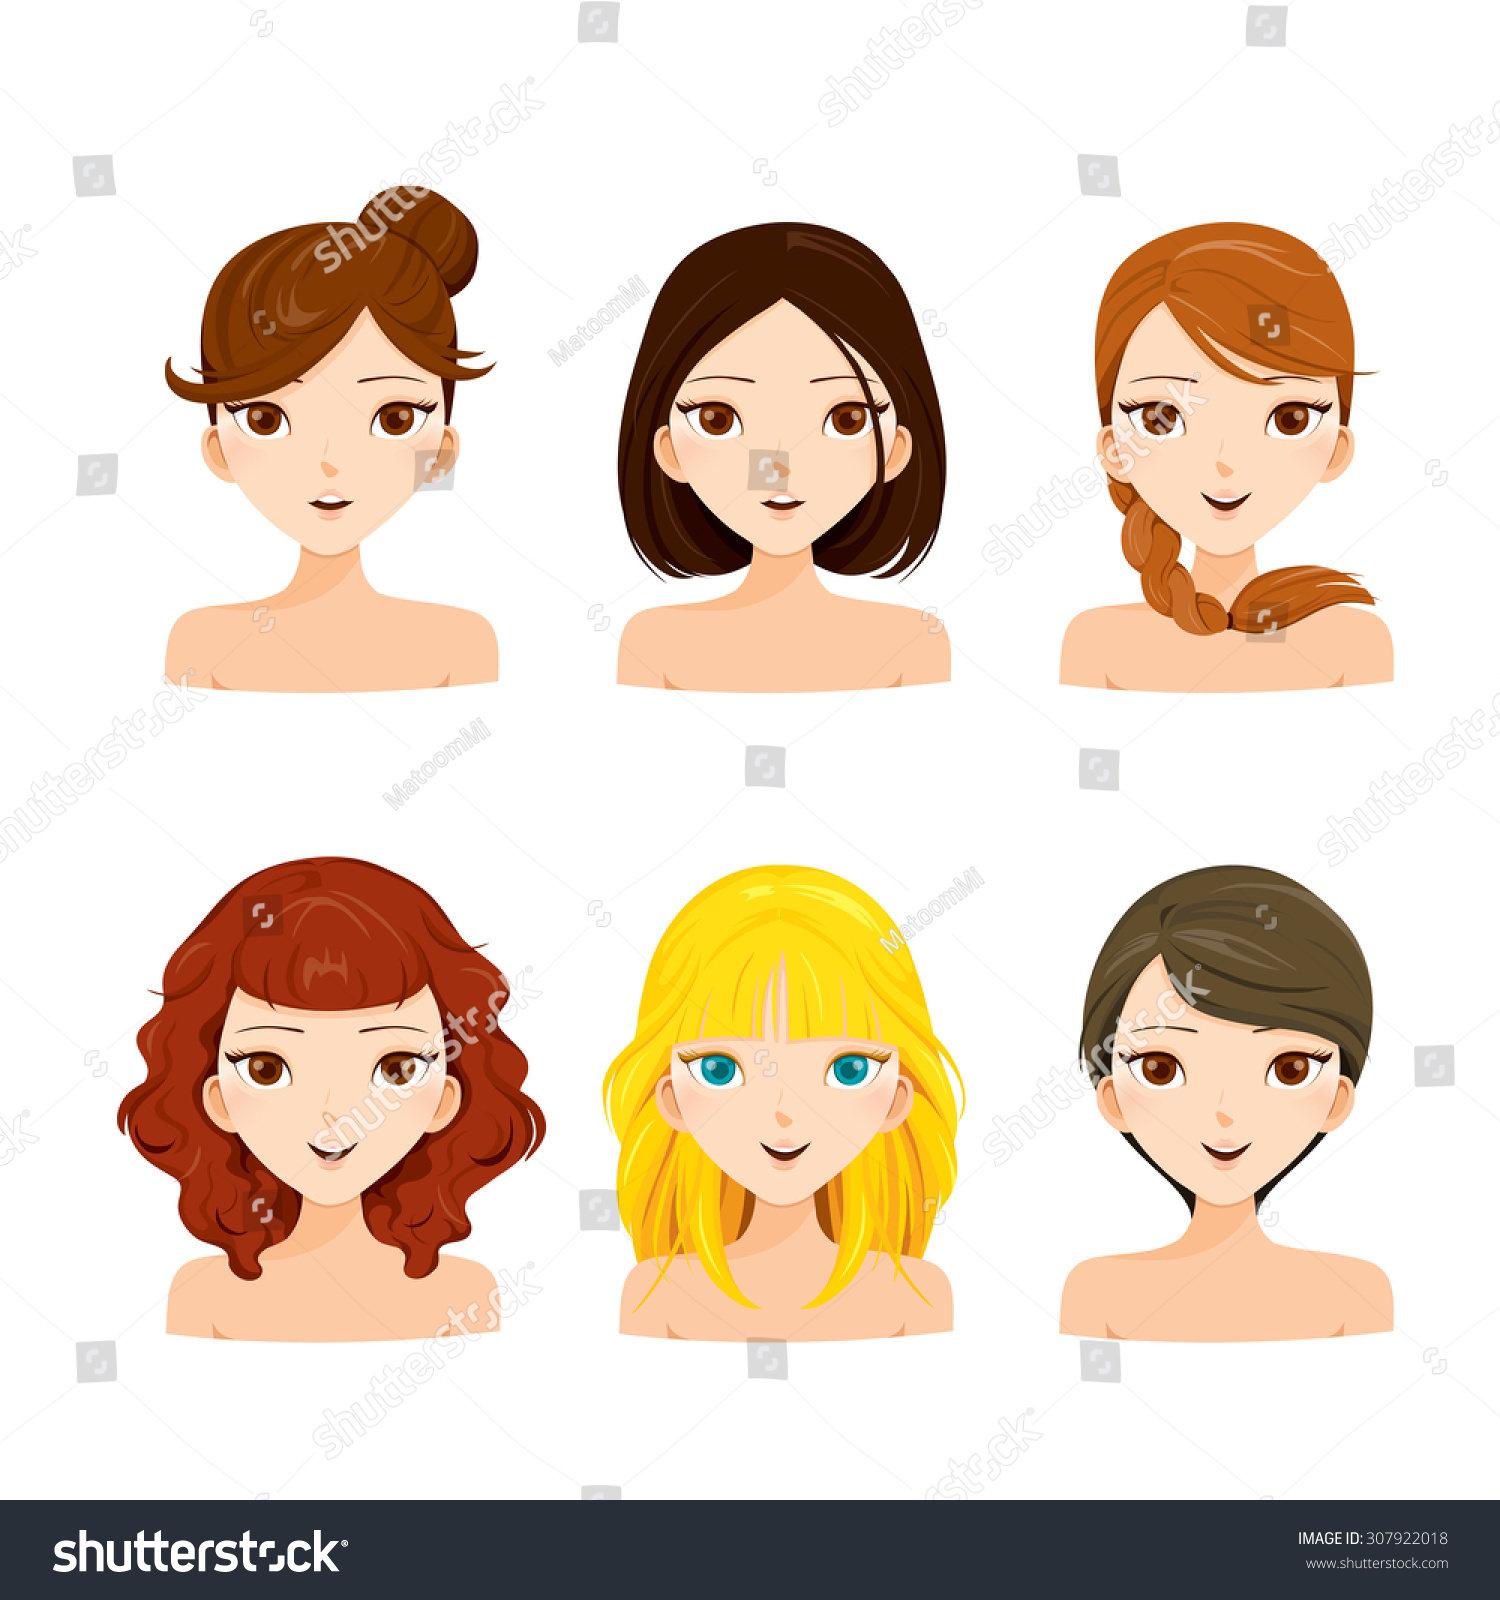 young women faces with various hairstyles hair colors